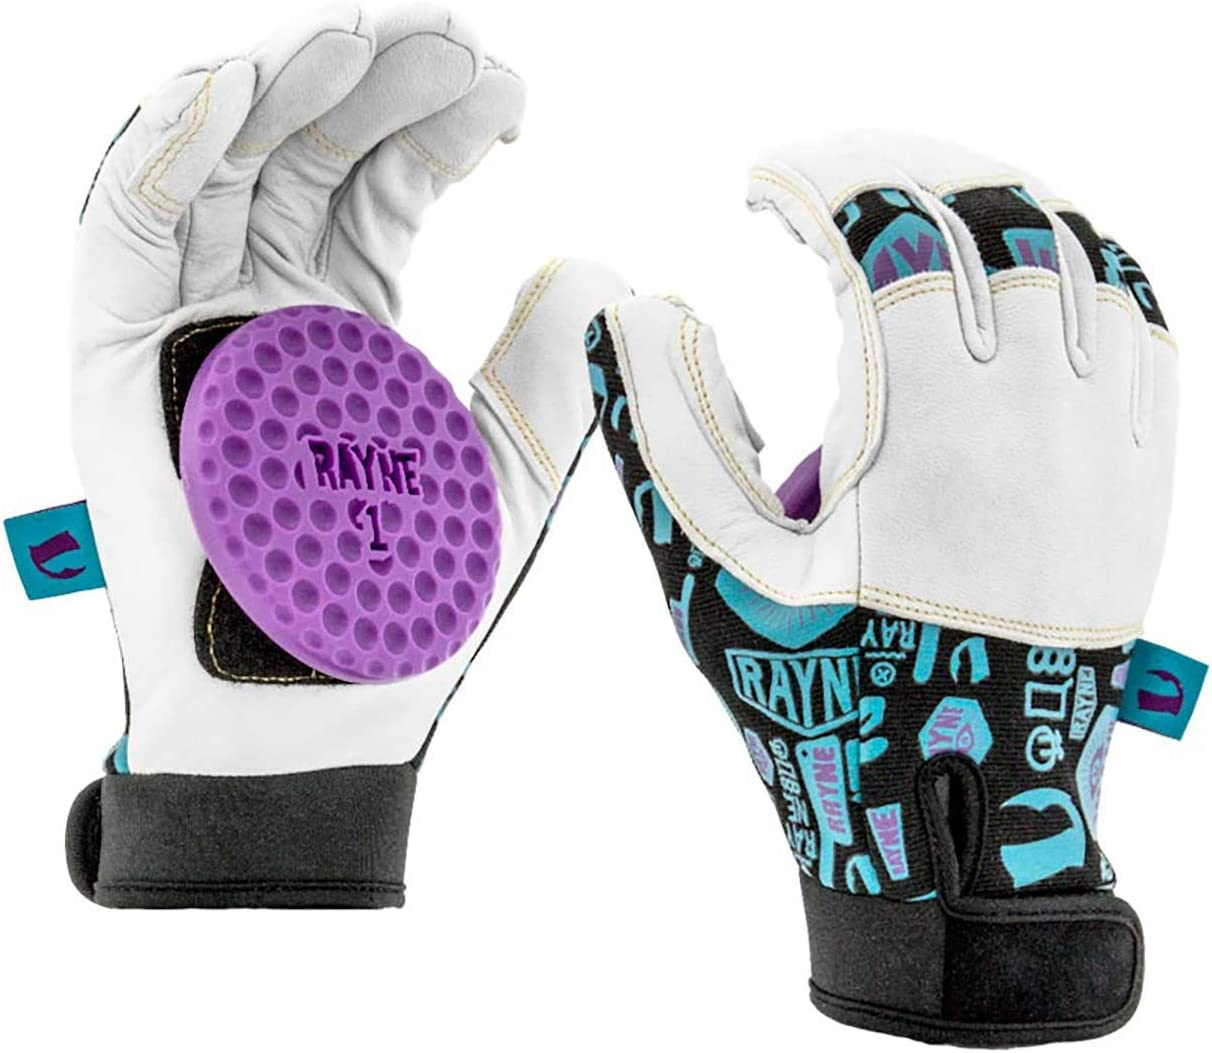 Longboard Skating Slide Gloves with Perforated Leather Fingers and Adjustable Neoprene Wrist Cuff Delrin Dish-Shaped Puck Rayne Idle Hands Leather Slide Gloves